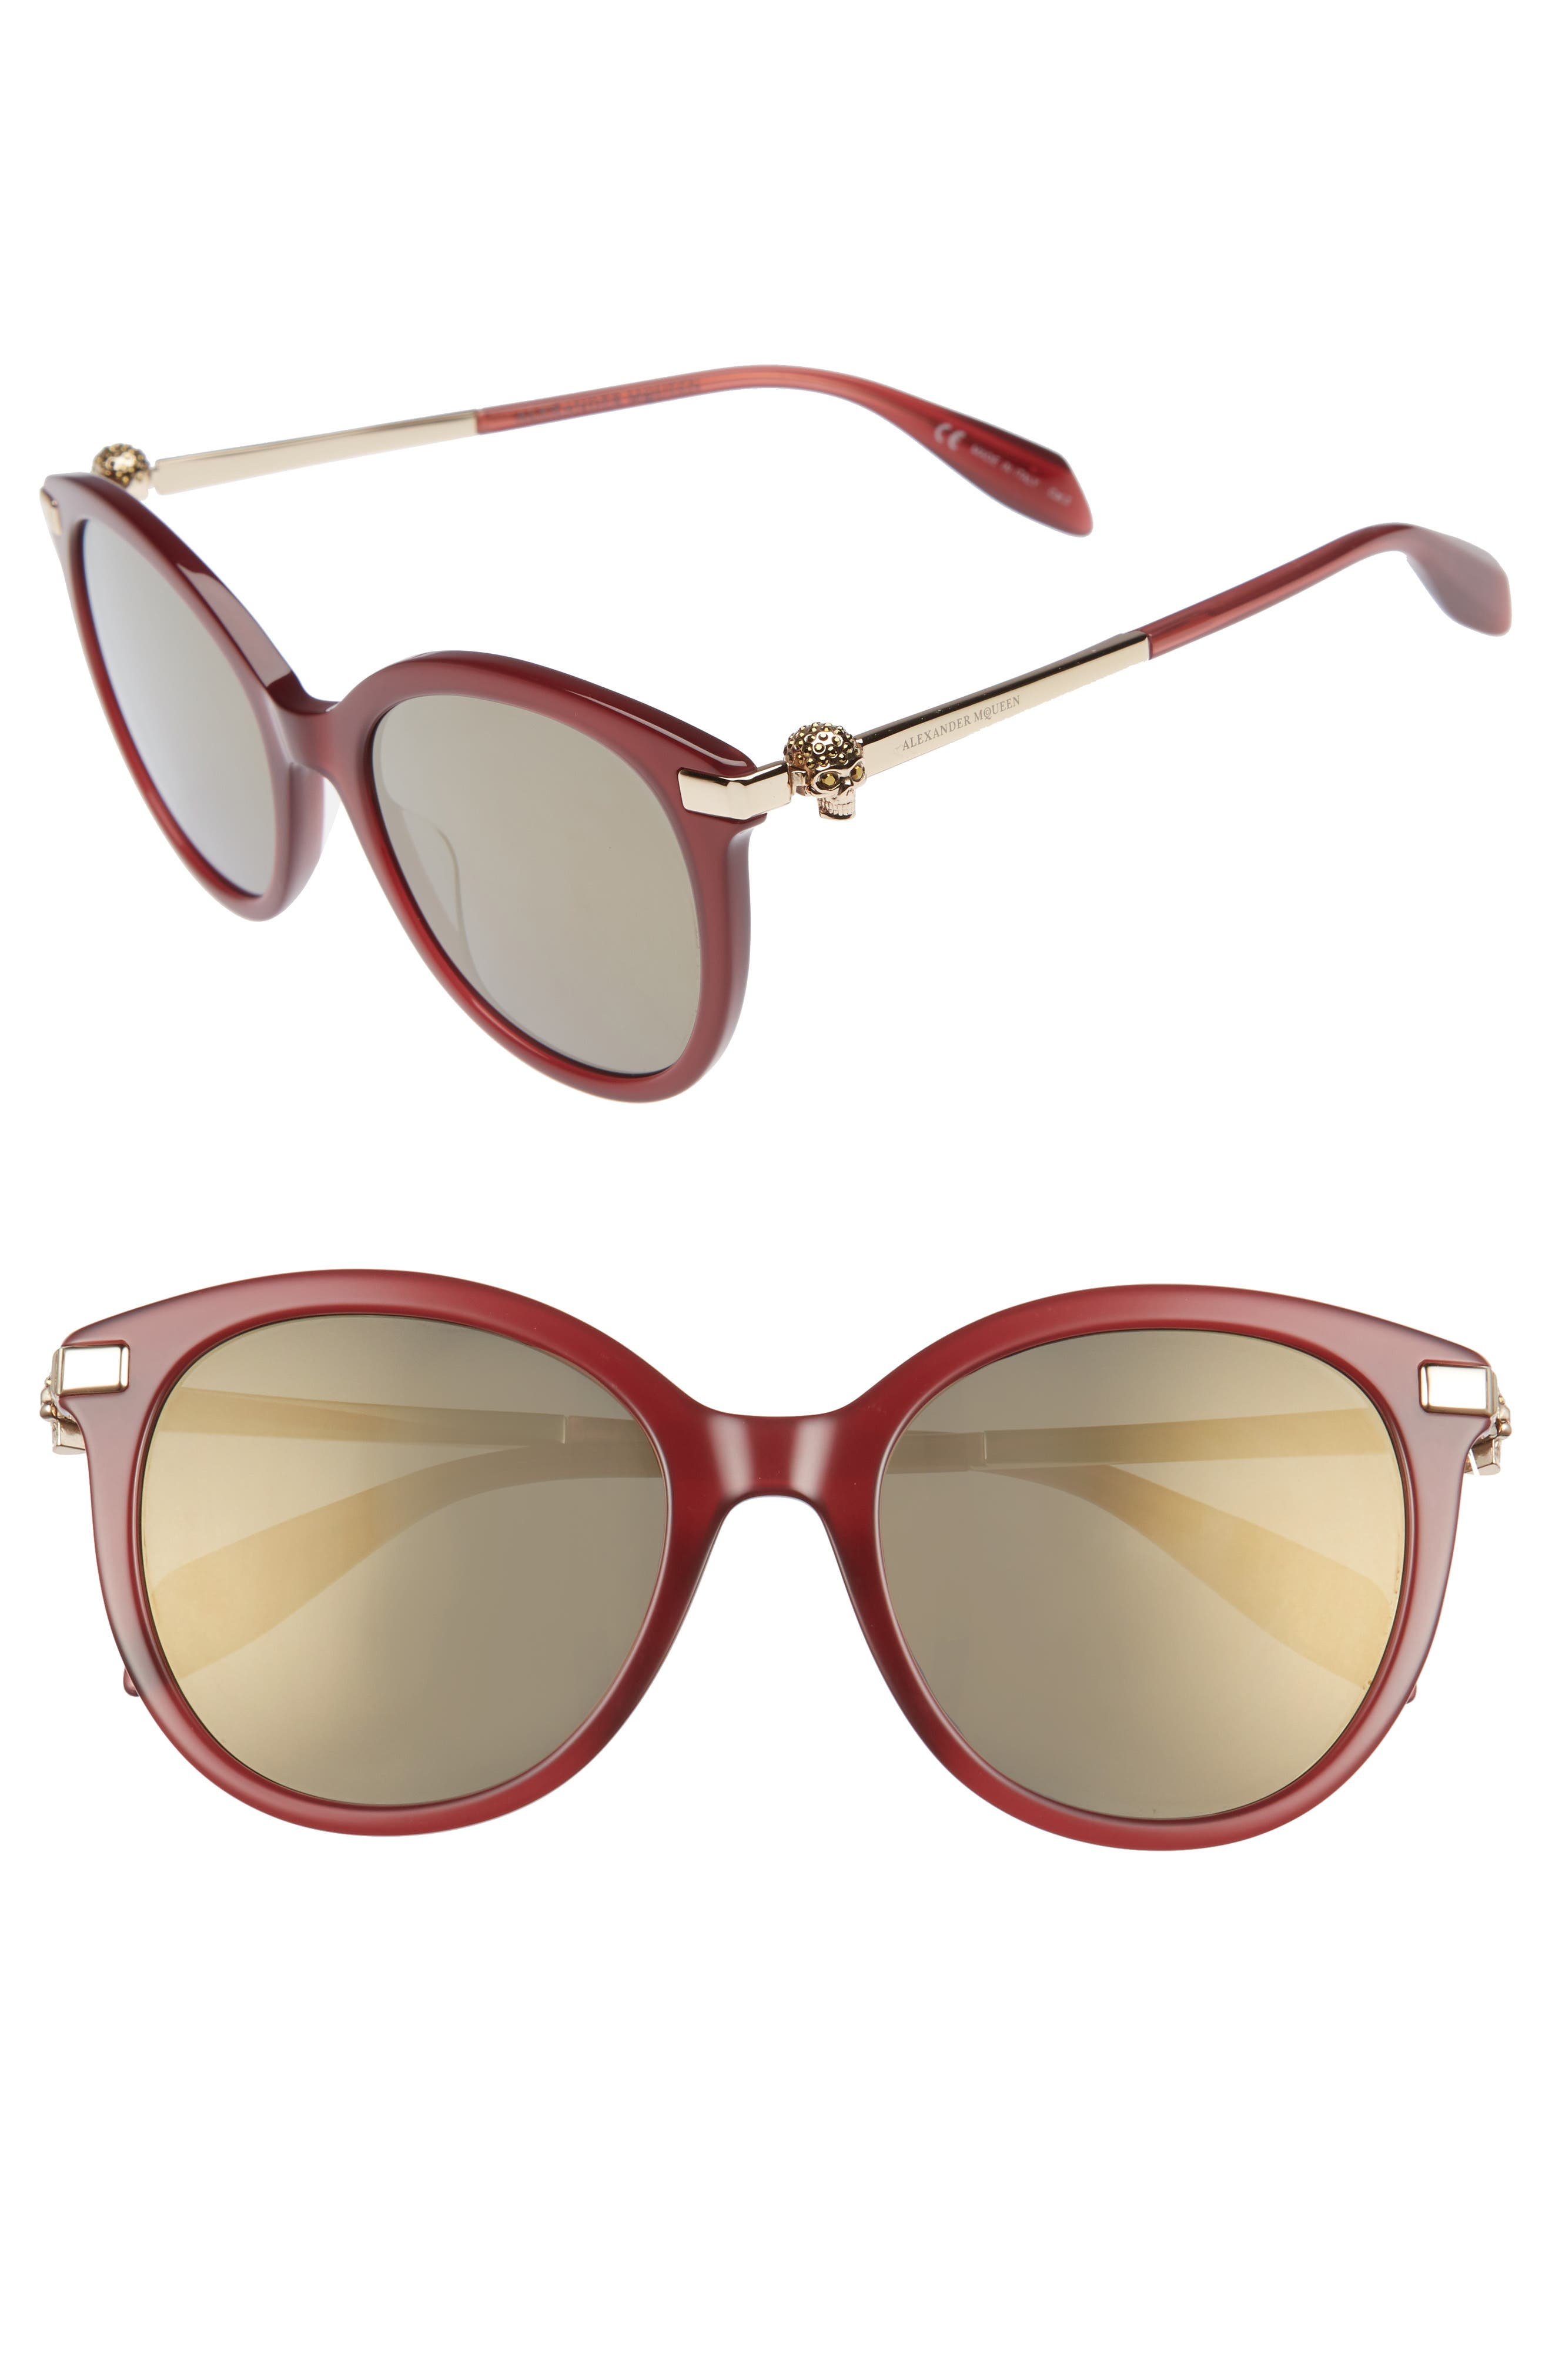 53mm Rounded Cat Eye Sunglasses,                             Main thumbnail 1, color,                             BURGUNDY